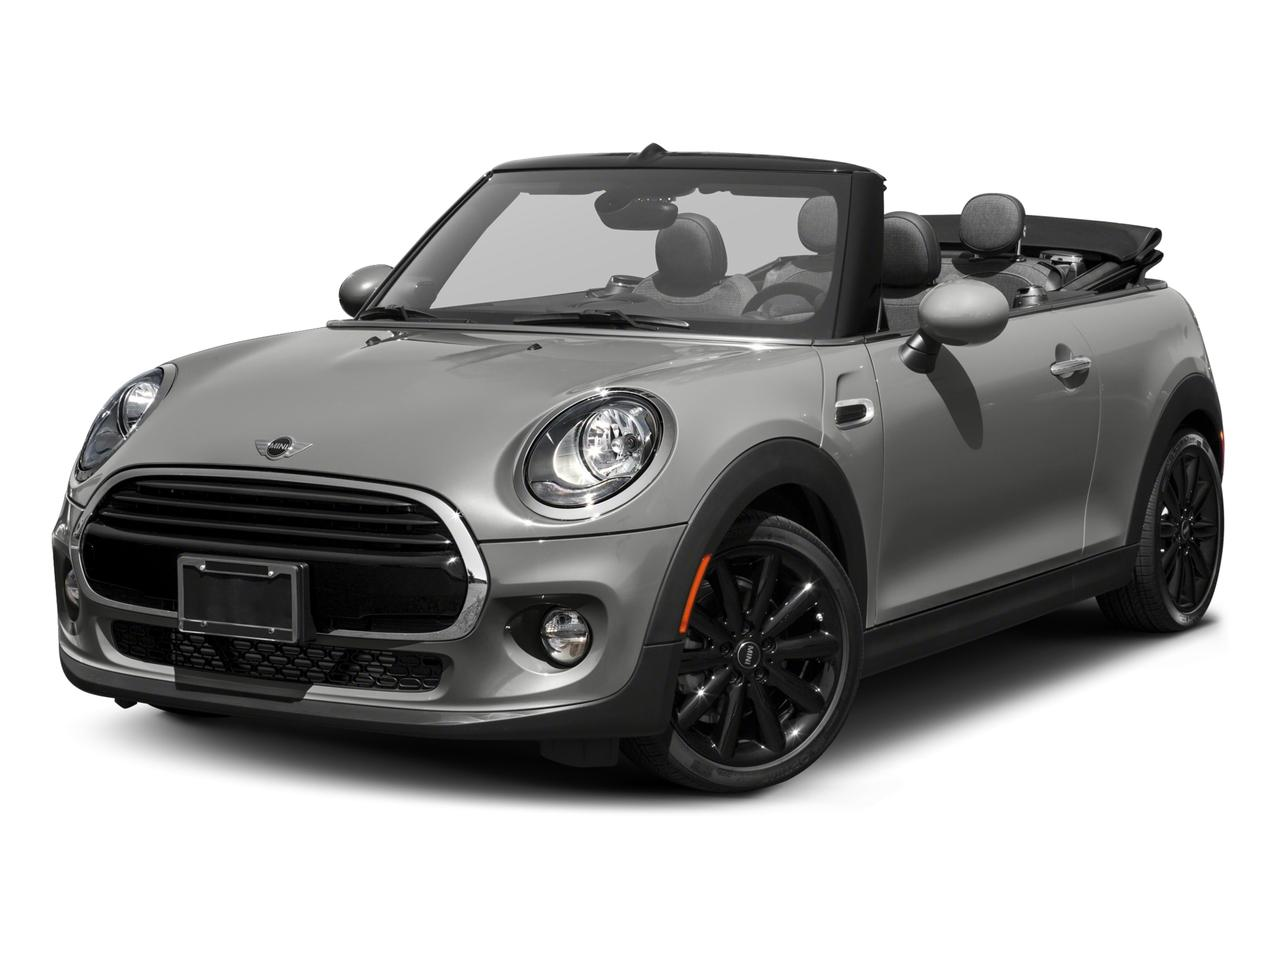 2017 MINI Cooper Convertible Vehicle Photo in Joliet, IL 60435